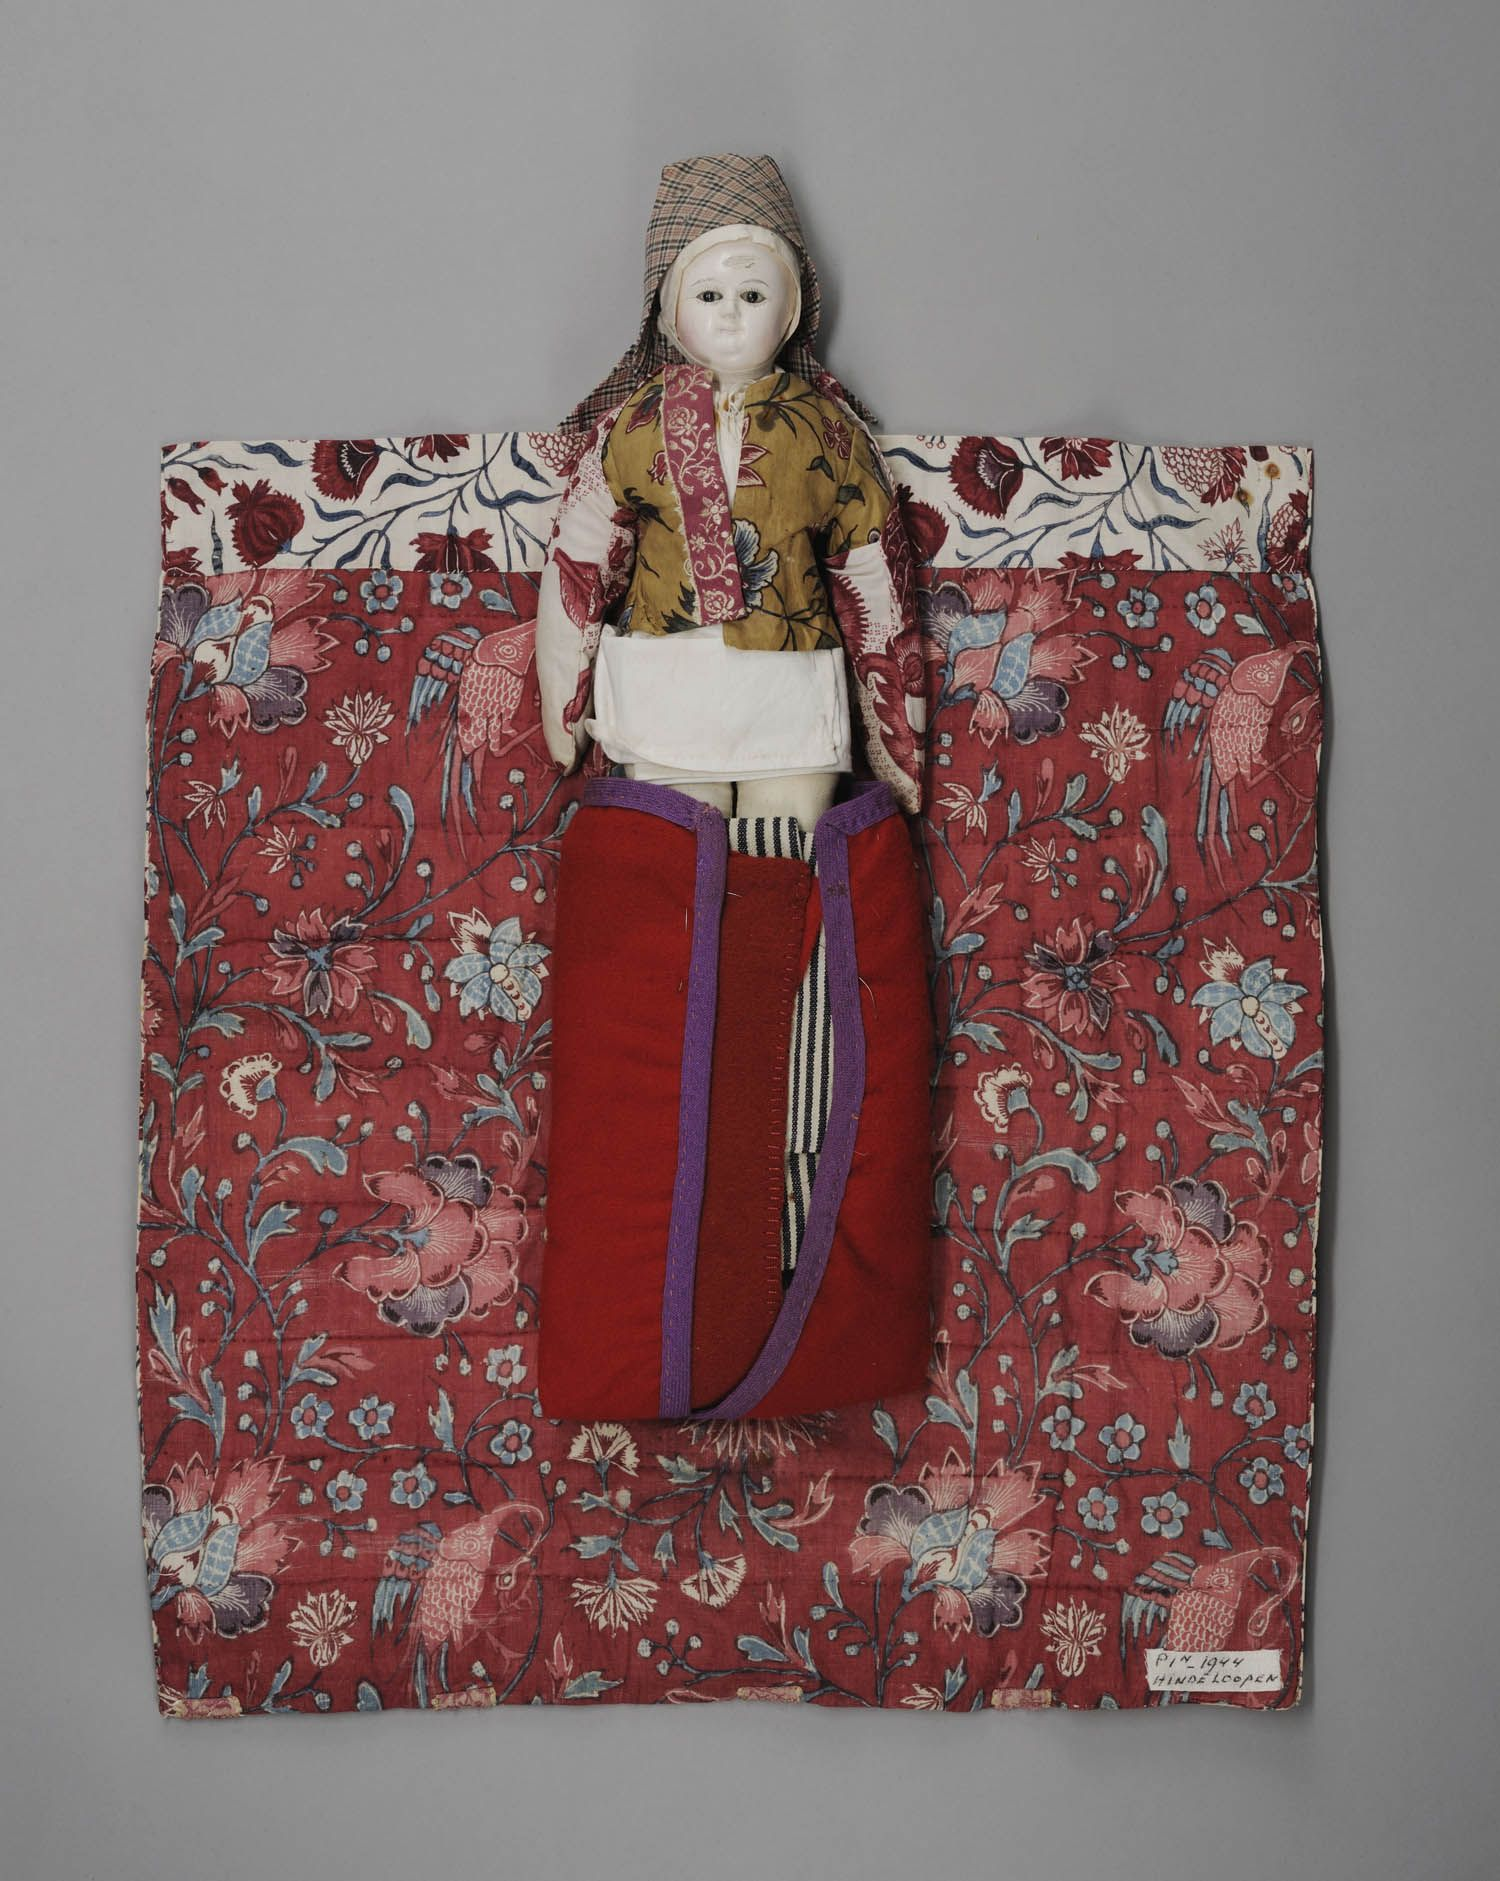 Doll dressed as a nurse in Hindeloopen, 1700-1800. The doll is dressed in Indian chintz clothes and wrapped in the same material, from the 18th century.